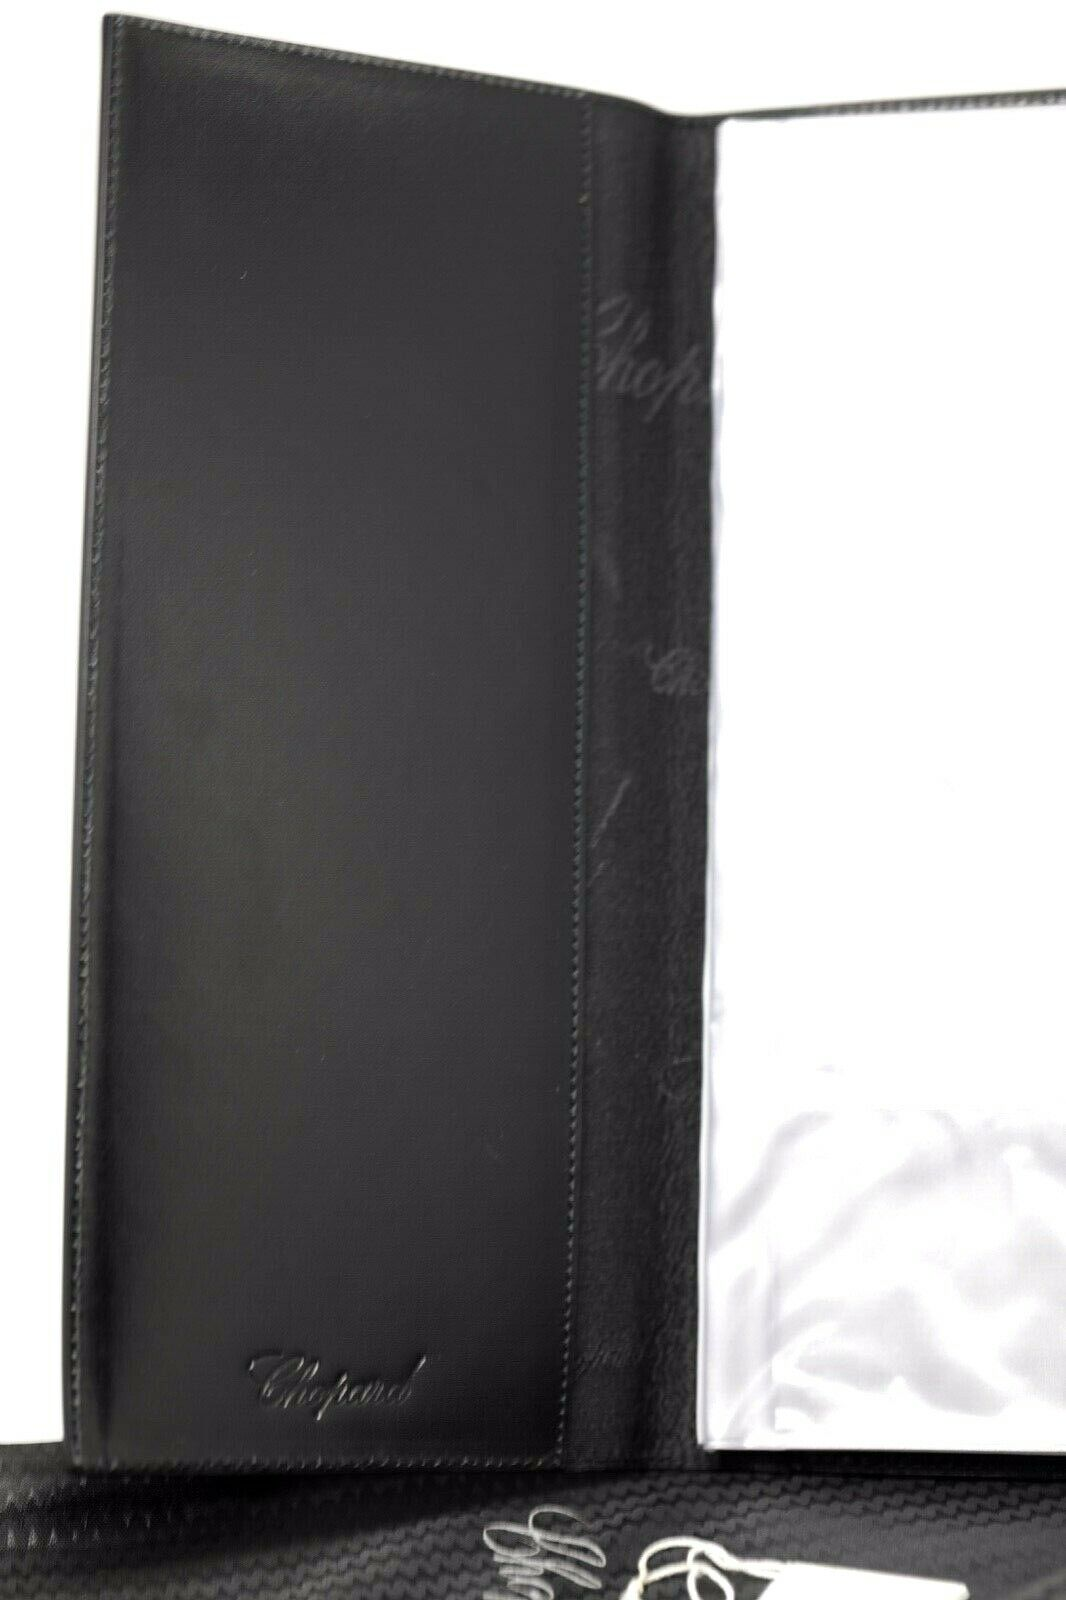 Chopard 95 7056 Black Leather Rubber 72 Business Card Holder Long 475x10 123703193183 6